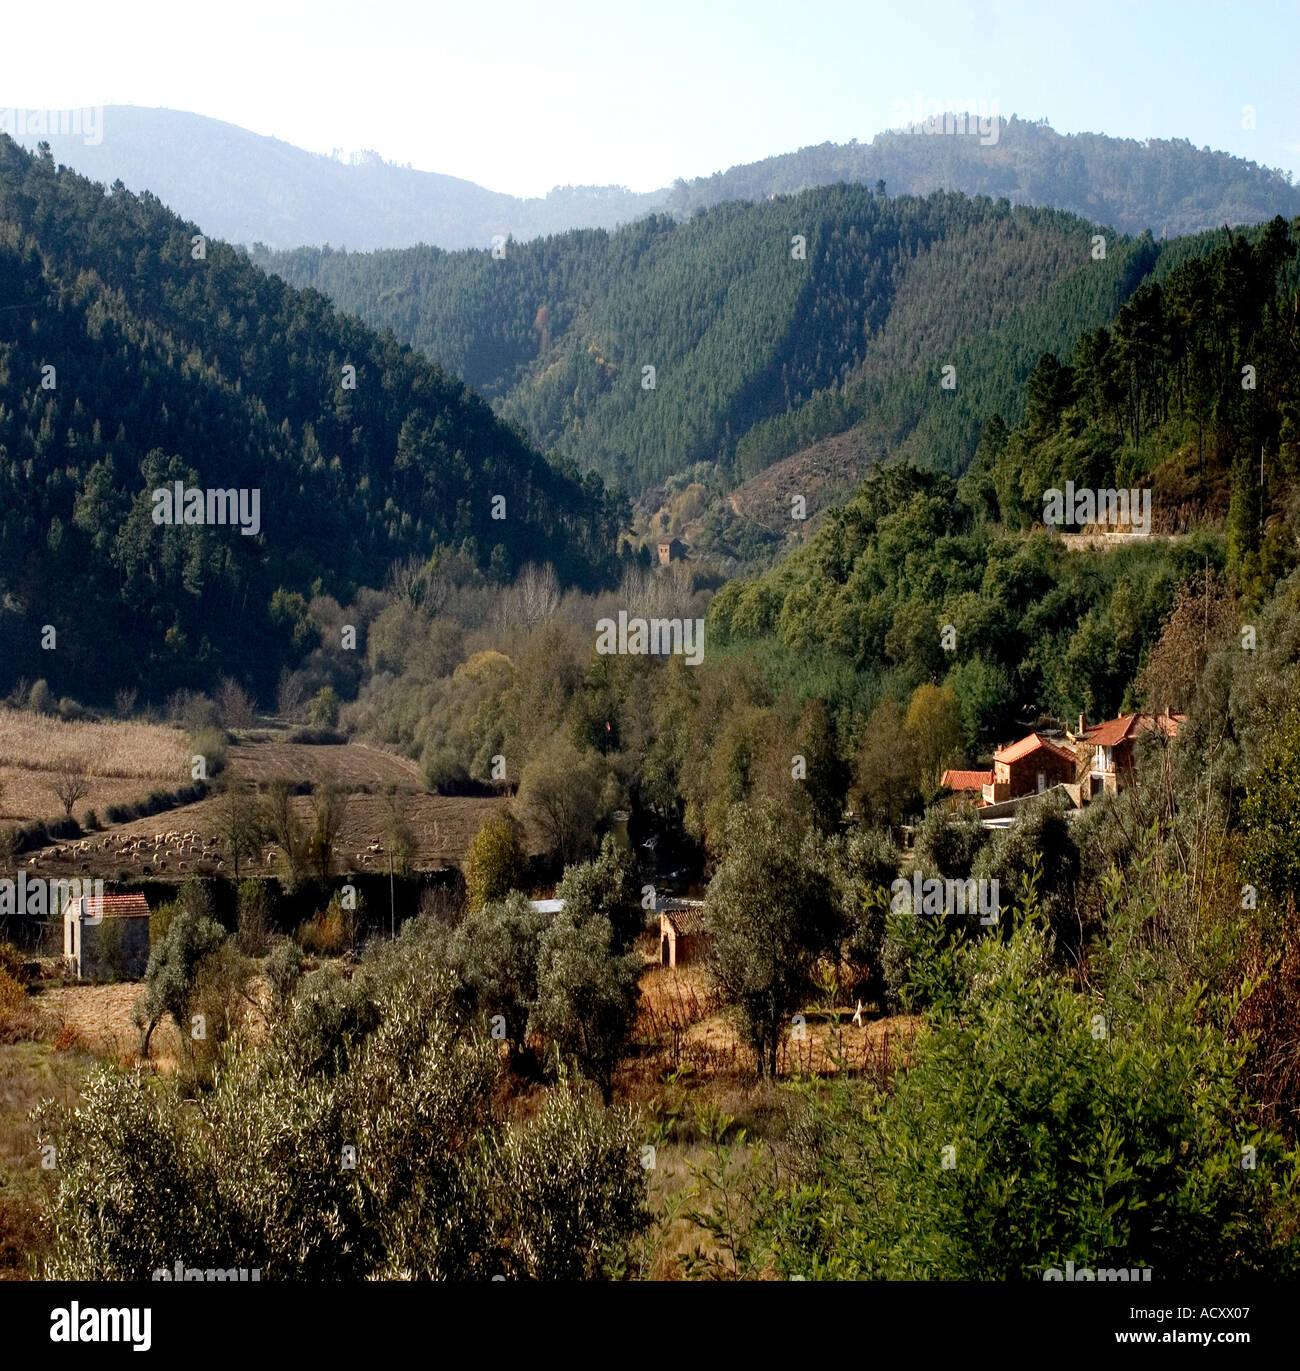 Valley near town of Alvoco das Varzeas small town in north central Portugal - Stock Image